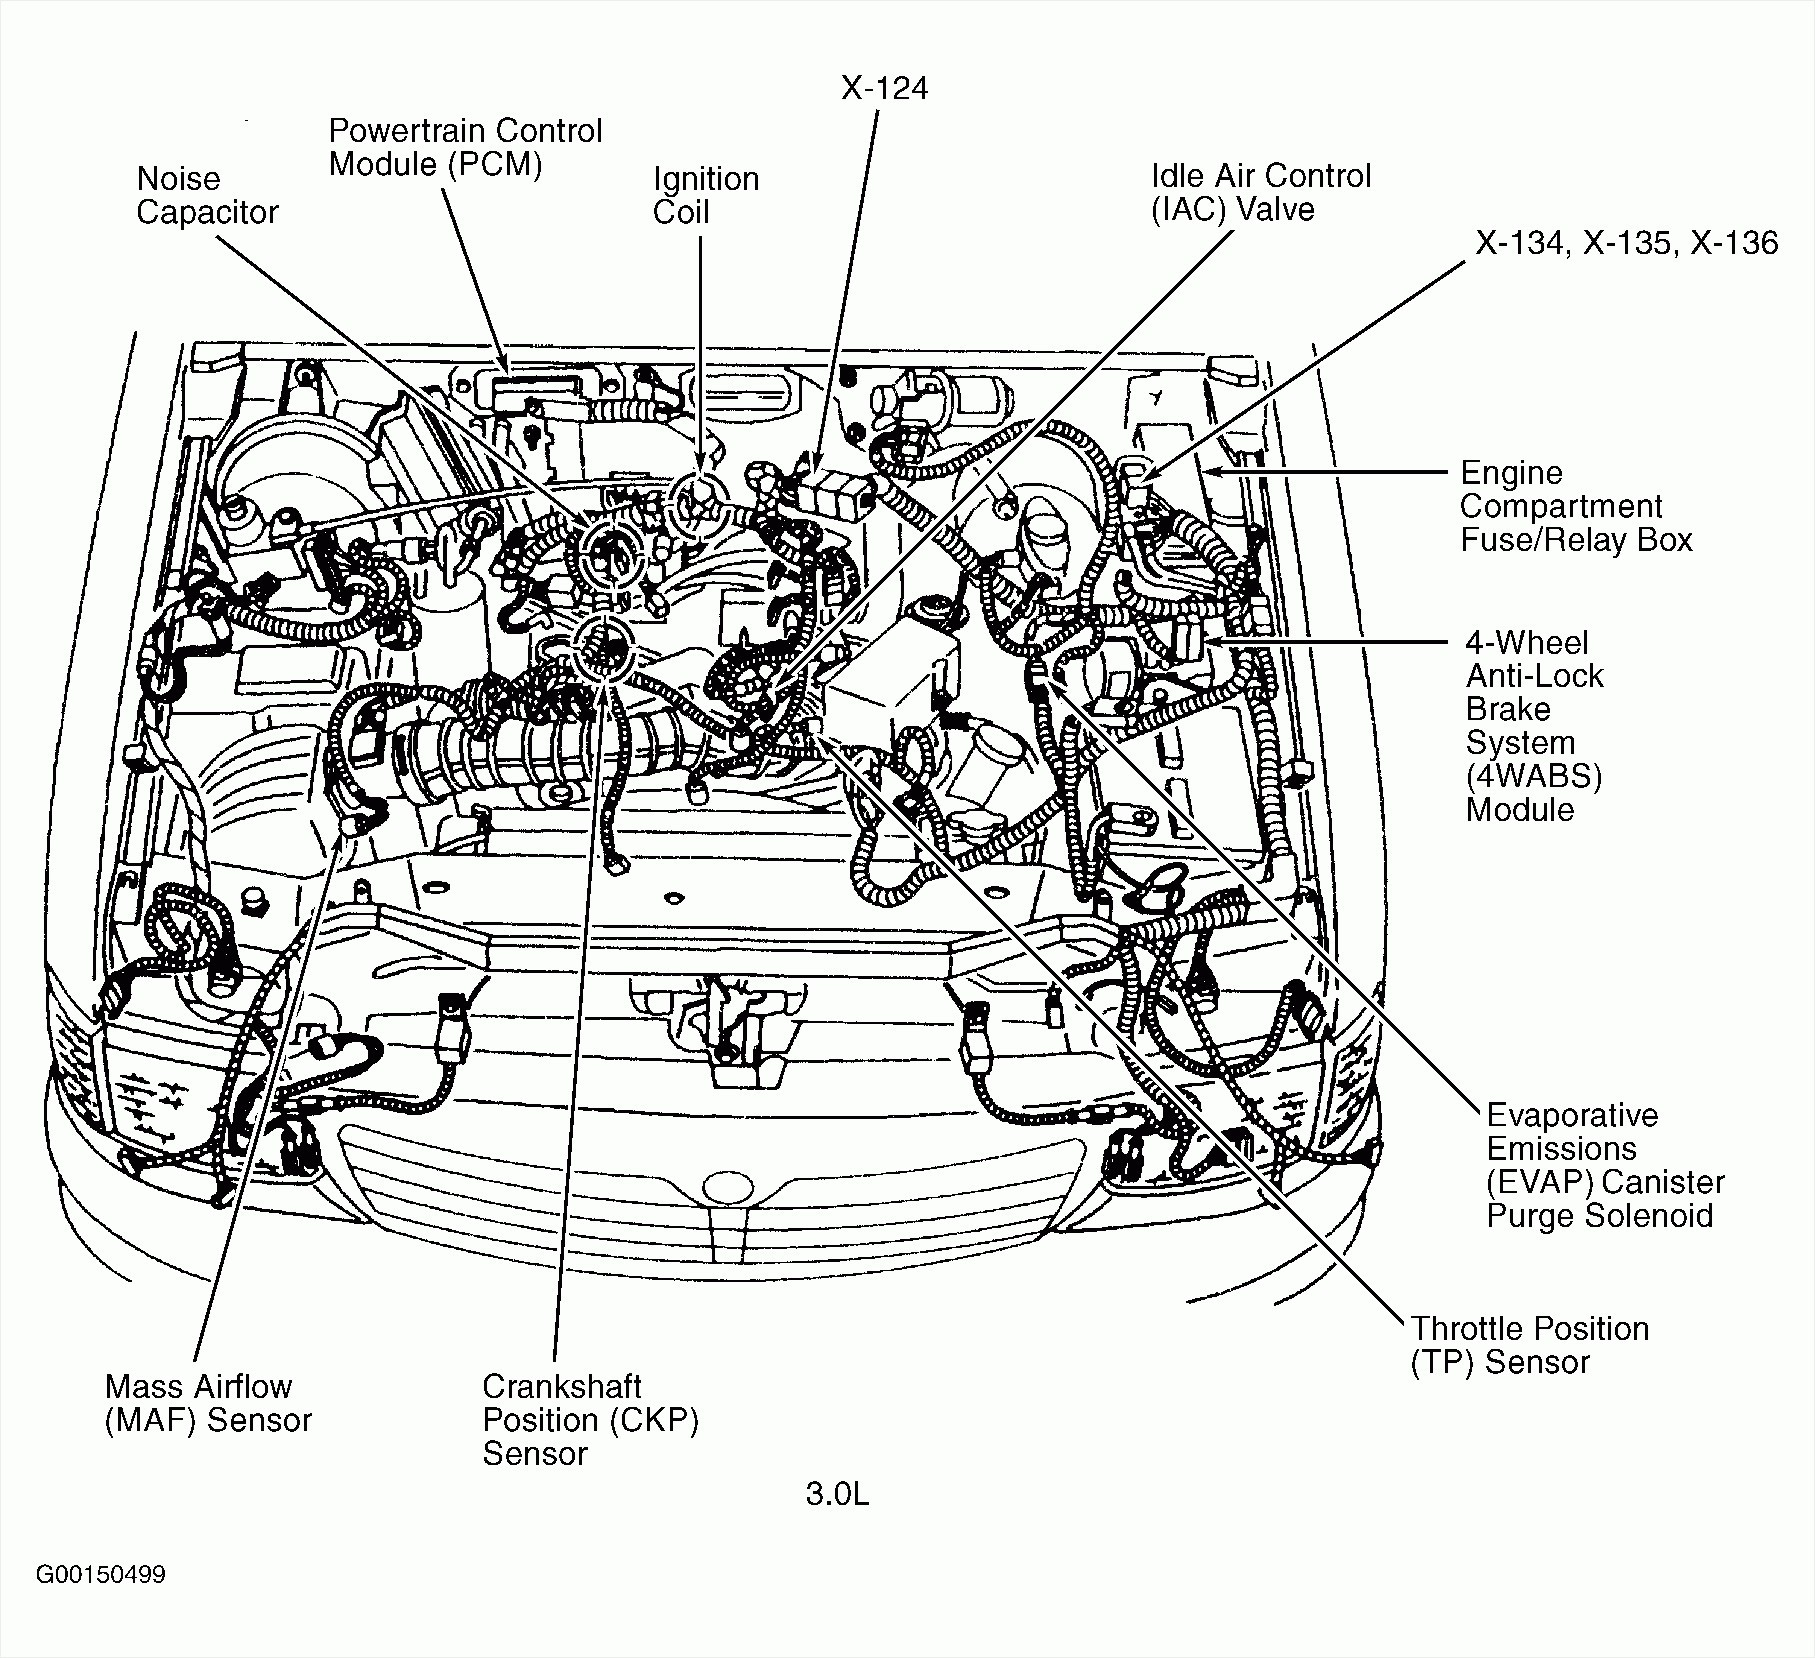 hight resolution of chevy 5 3 vortec engine diagram wiring diagram perfomance chevy 6 0 pulley diagram